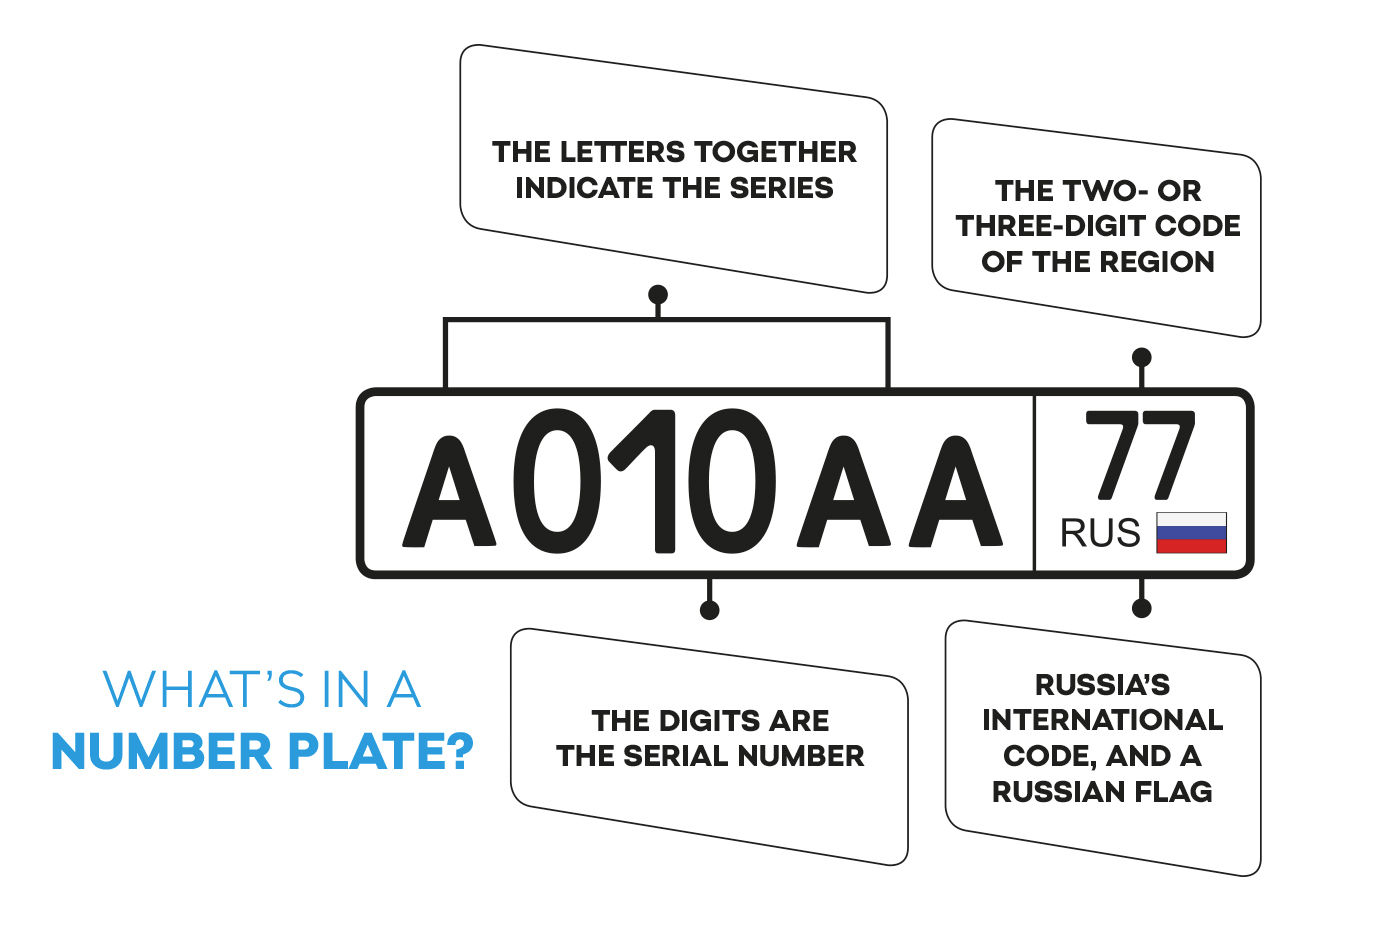 What's in a number plate?